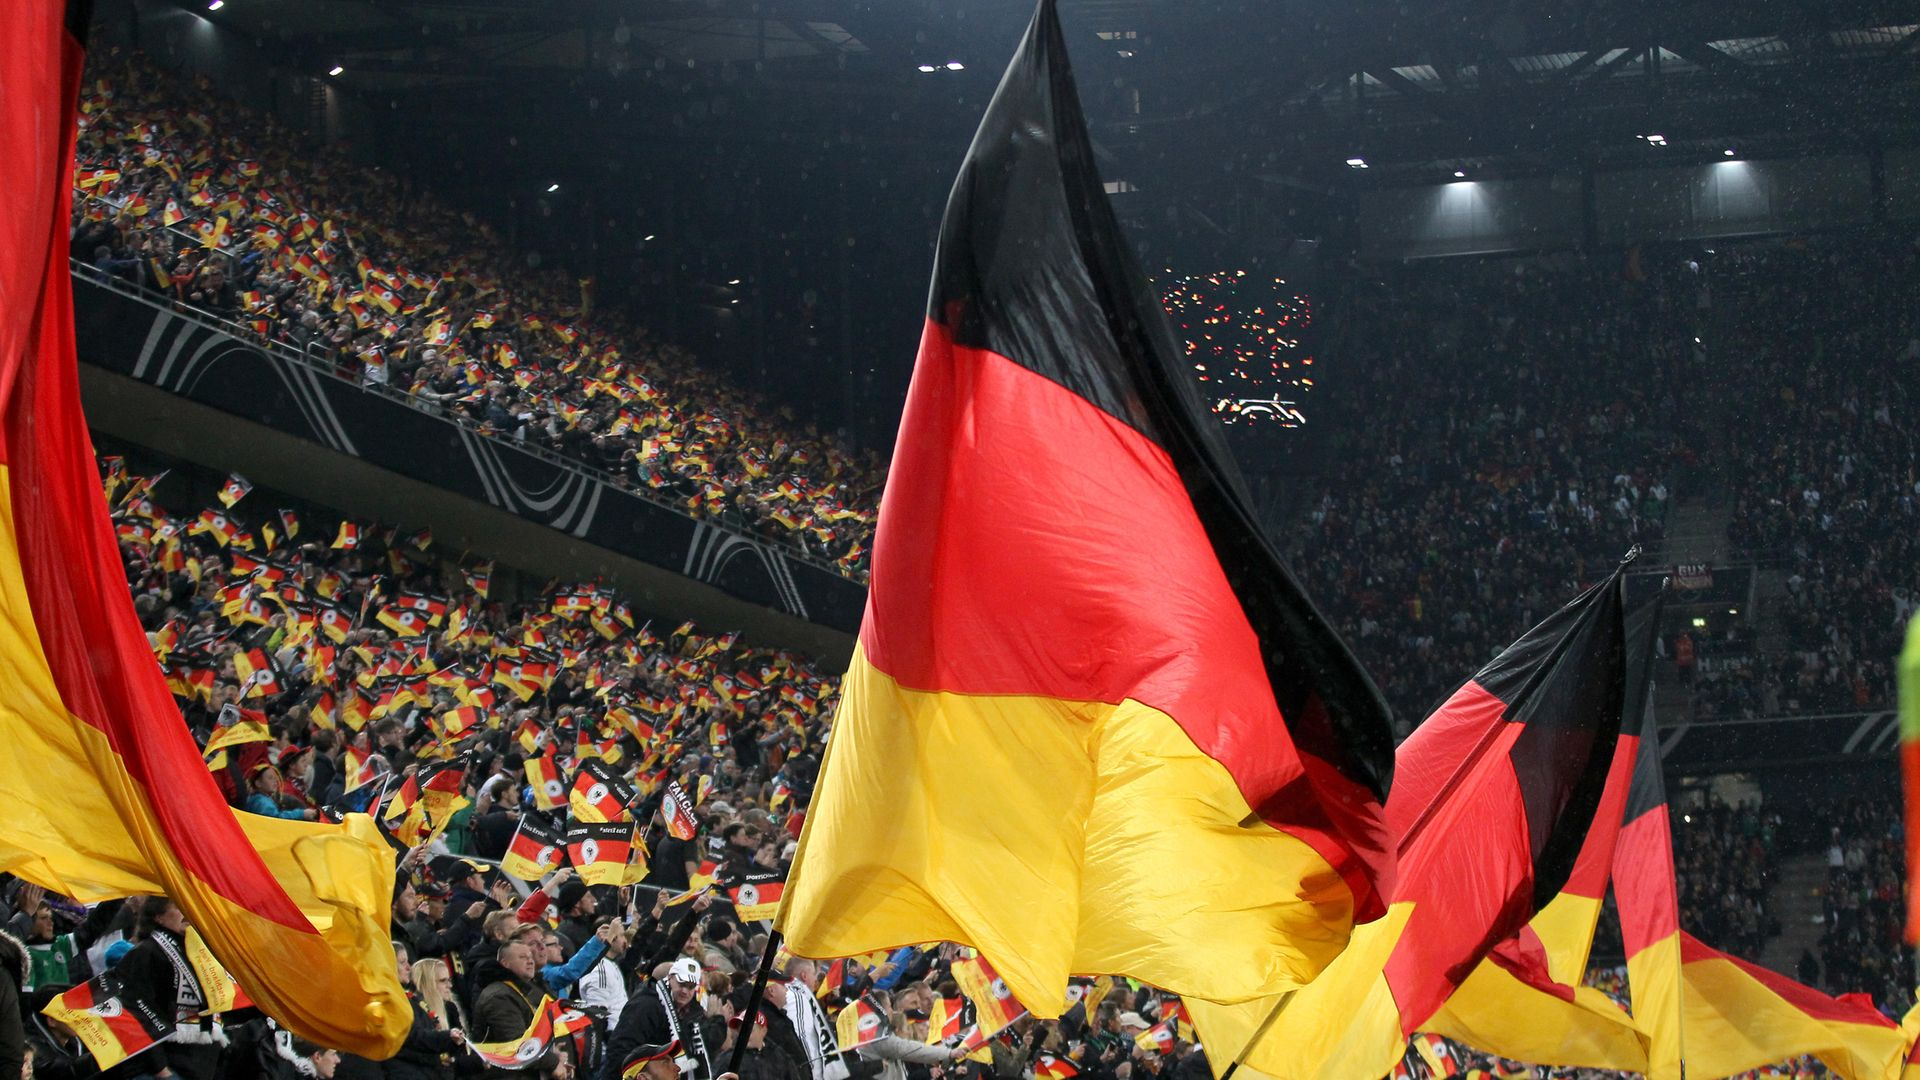 A German flag is flown in a sports stadium - Credit: PA